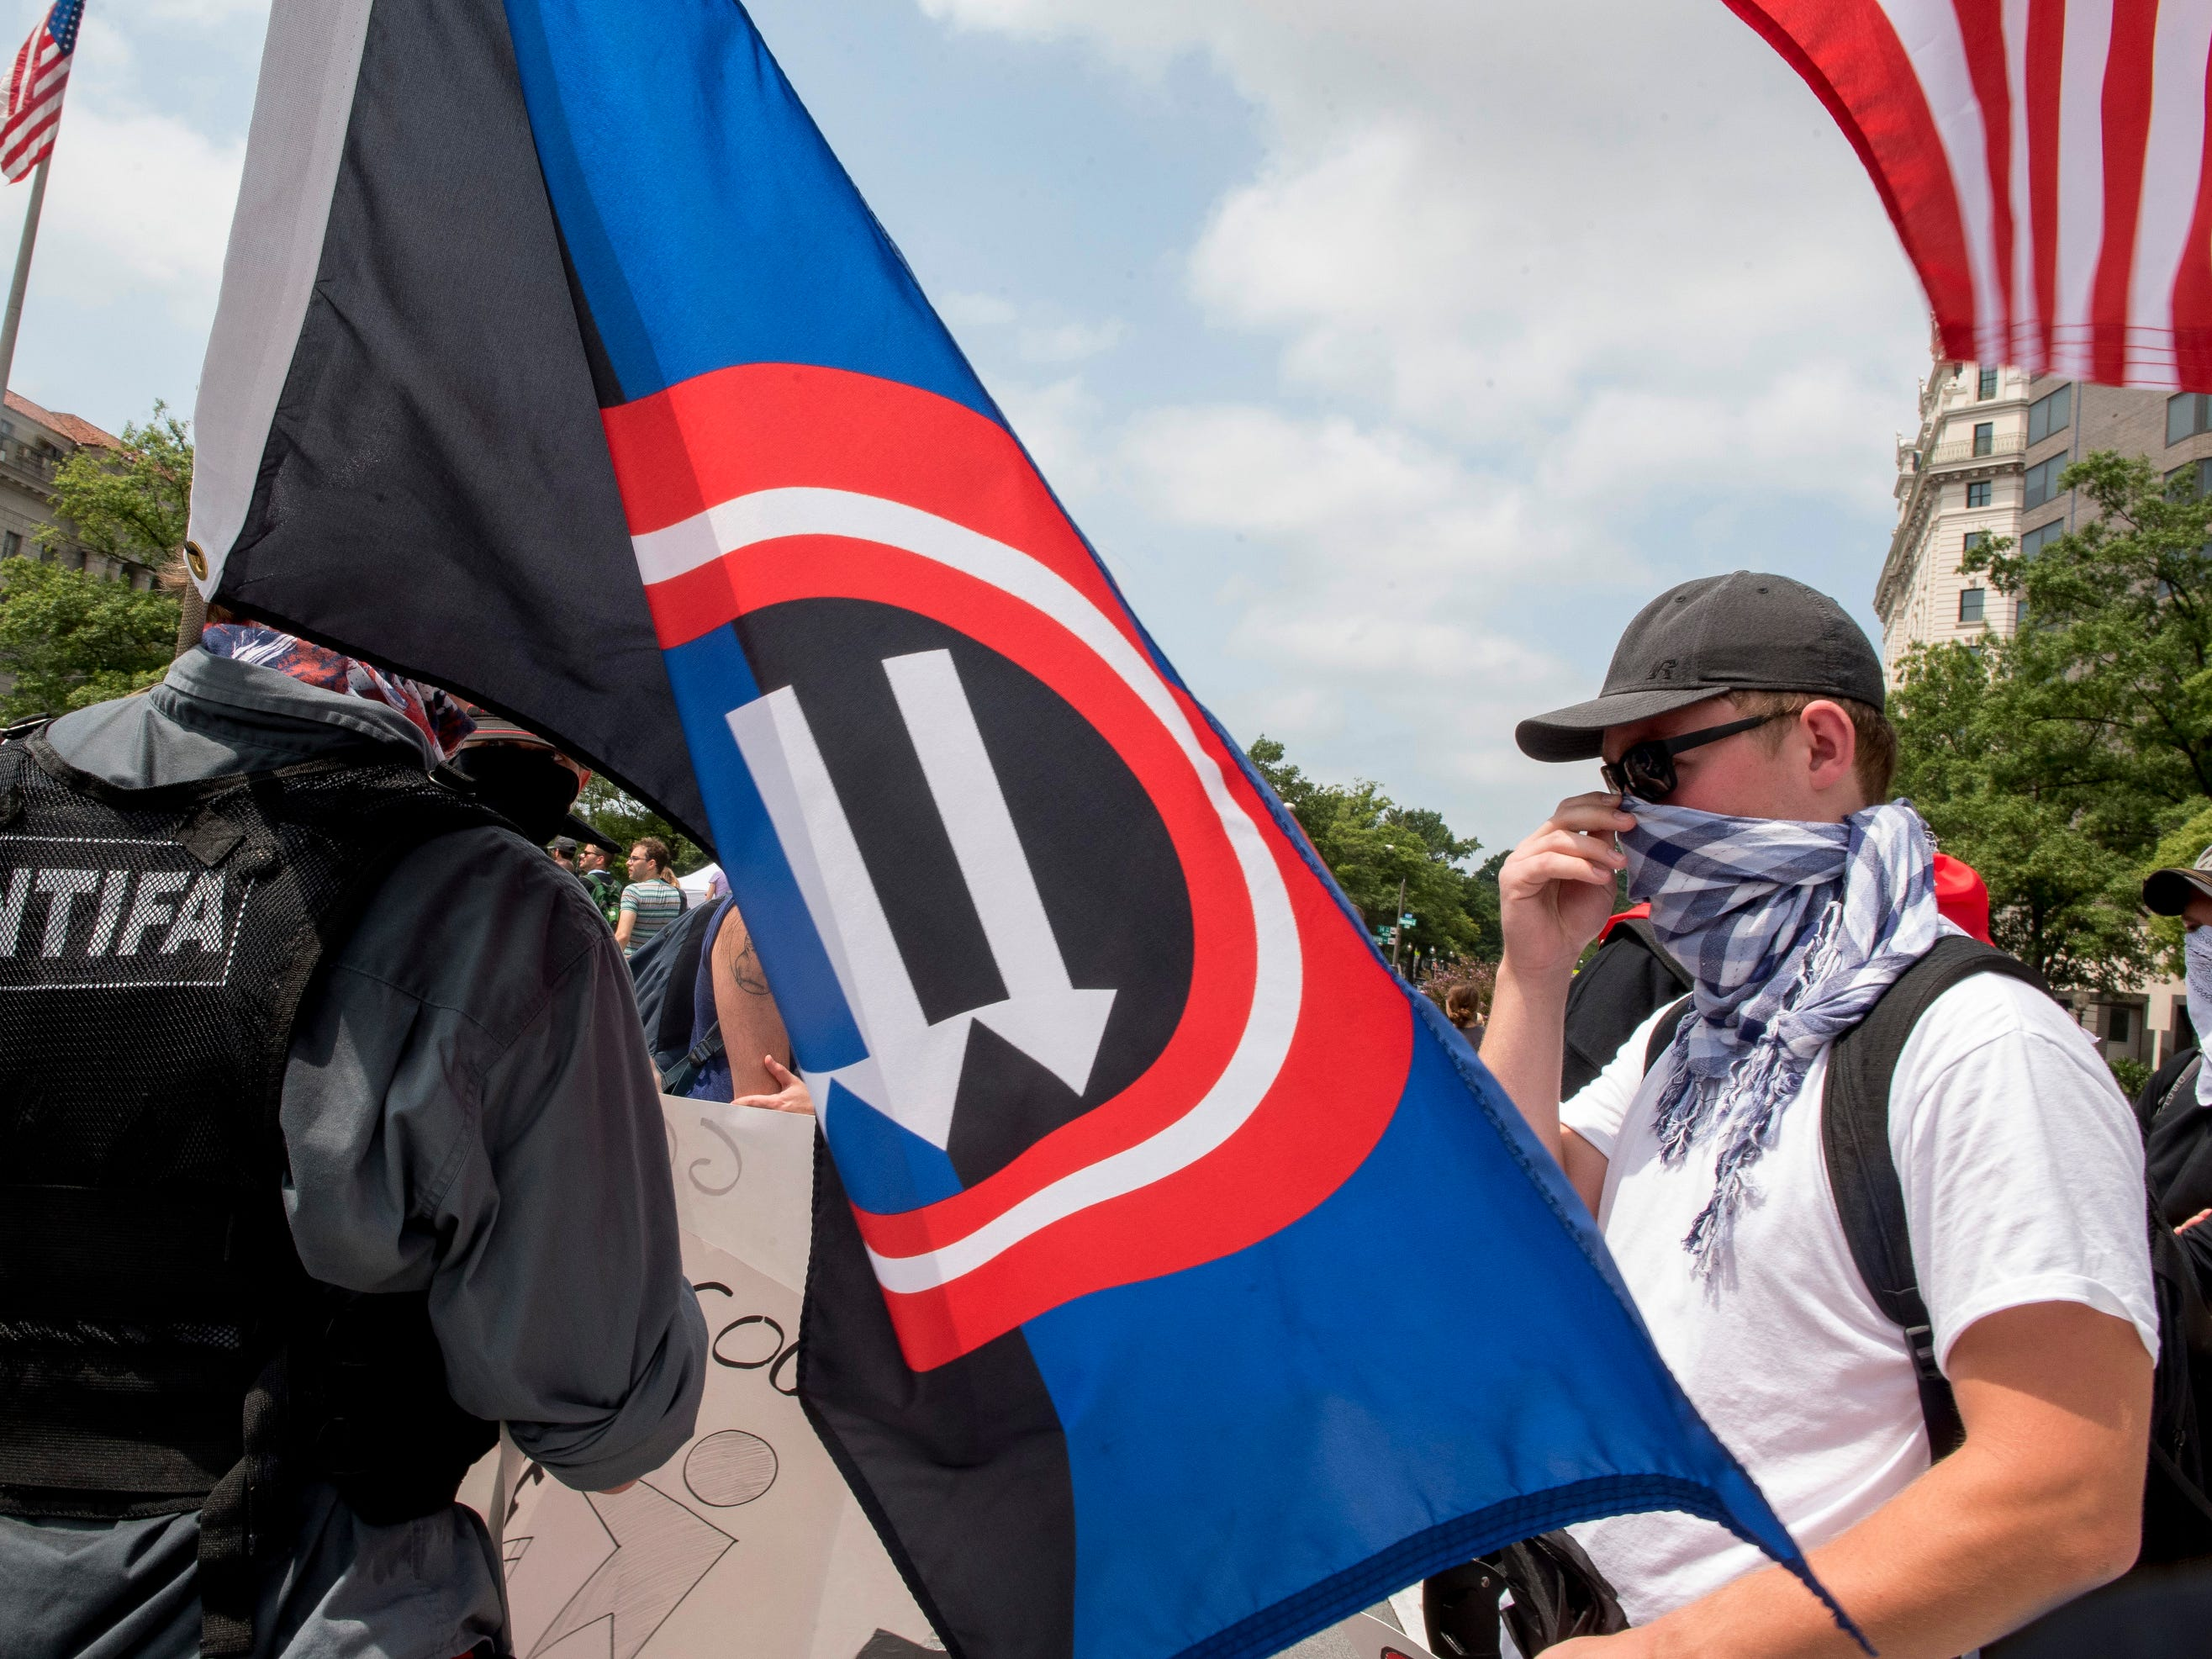 Participants gather at Freedom plaza before the Unite the Right rally on Aug. 12, 2018 in Washington. A year ago and 120 miles southwest of Washington, a Unite the Right rally in Charlottesville, Virginia, turned deadly. Heather Heyer, a 32-year-old legal assistant, was struck and killed when a white supremacist slammed his car into a counter-protest. And two Virginia state troopers died when their surveillance helicopter crashed near the protests.